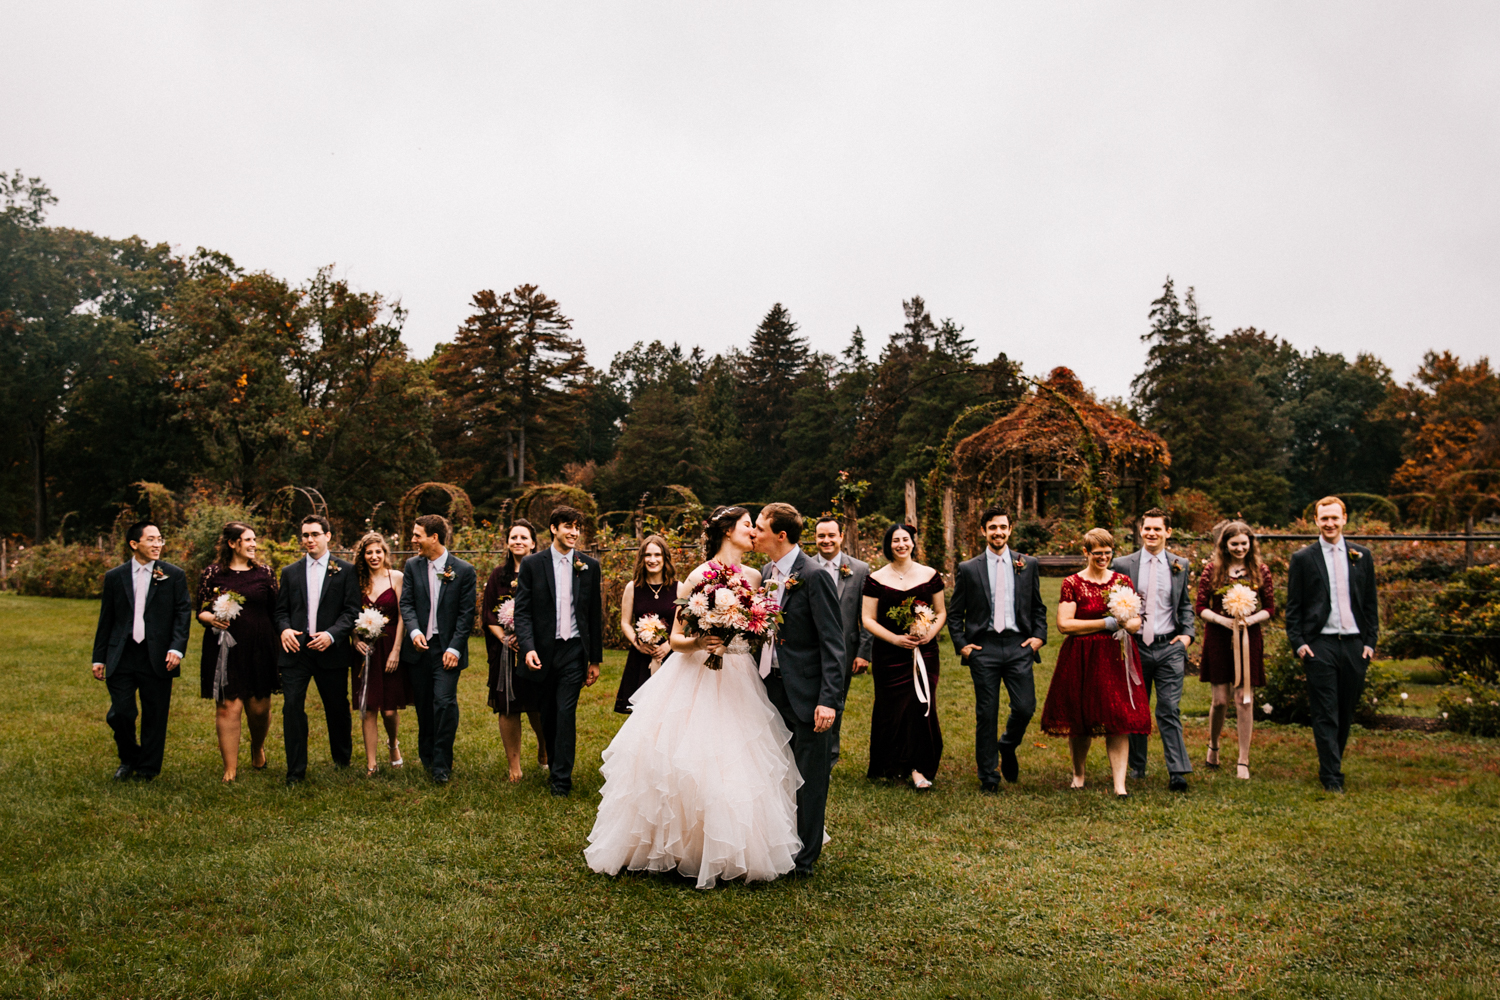 elizabeth-park-wedding-bridal-party-fall-autumn-wedding-new-england-boston-wedding.jpg